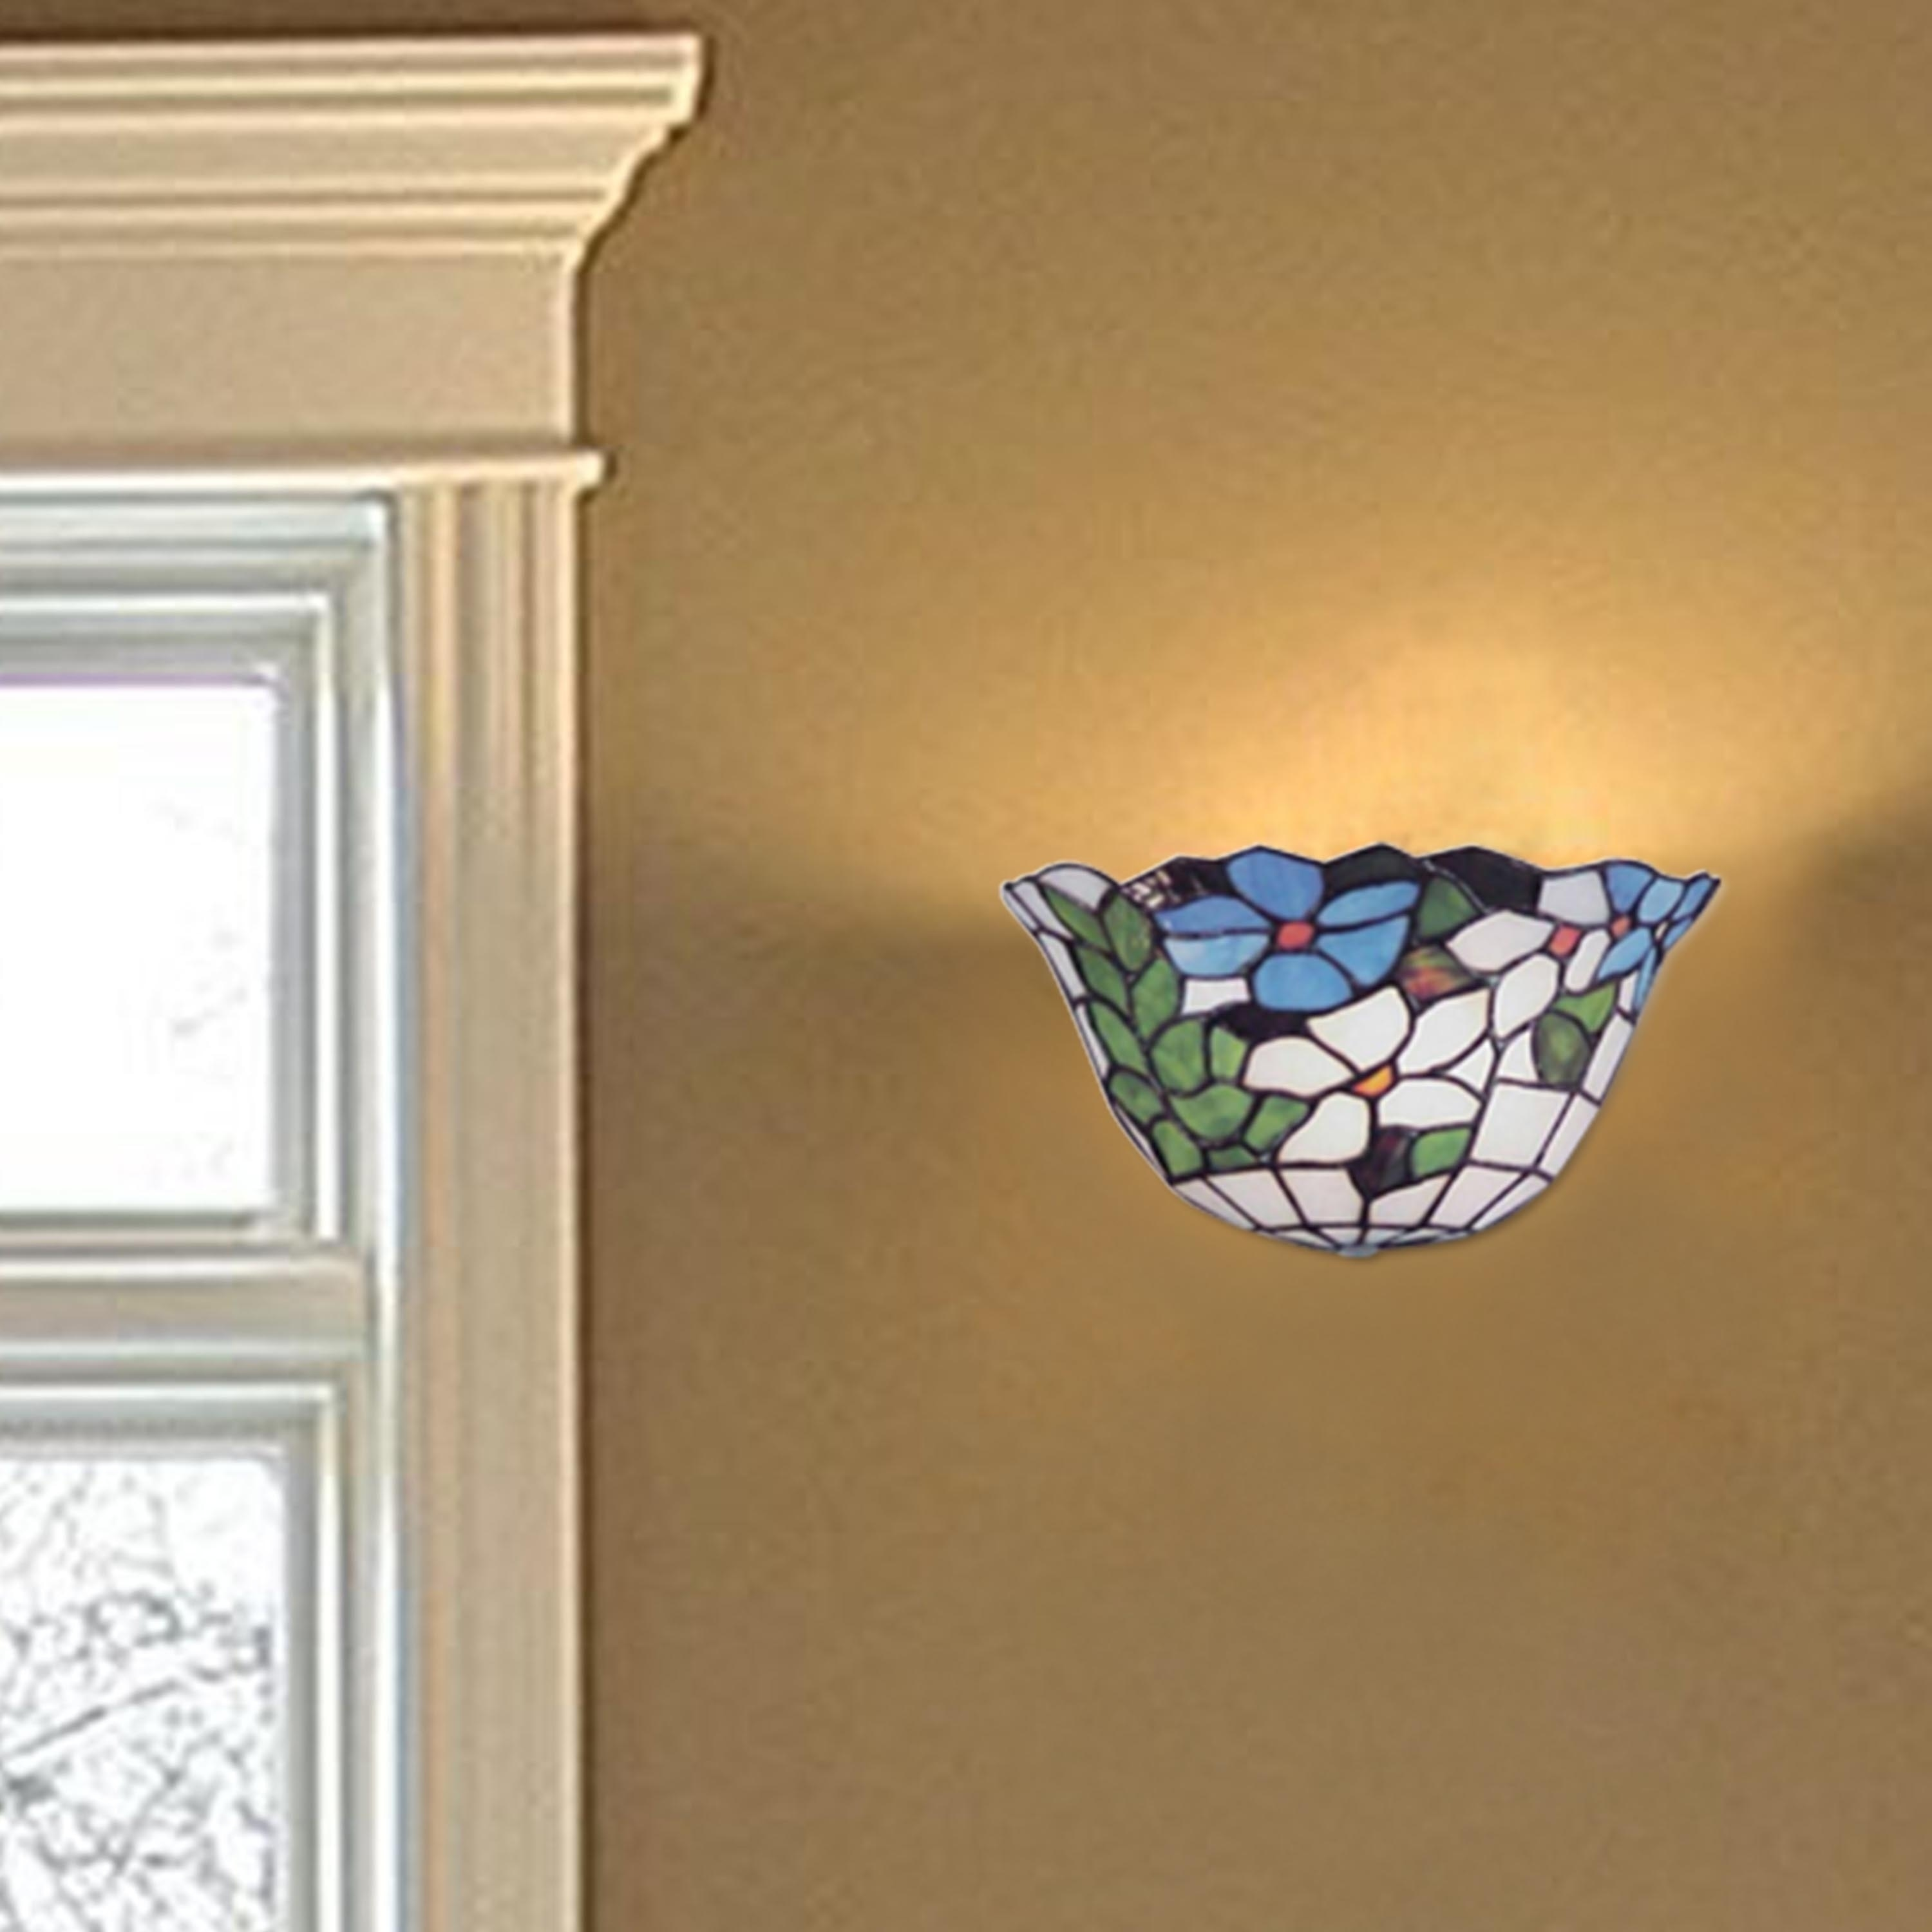 ebay wall pendant liasion lamp lighting dale liasionquot victorian tiffany of floor sconce stained on style pair table warehouse ceiling turtle glass lamps new flower patterned